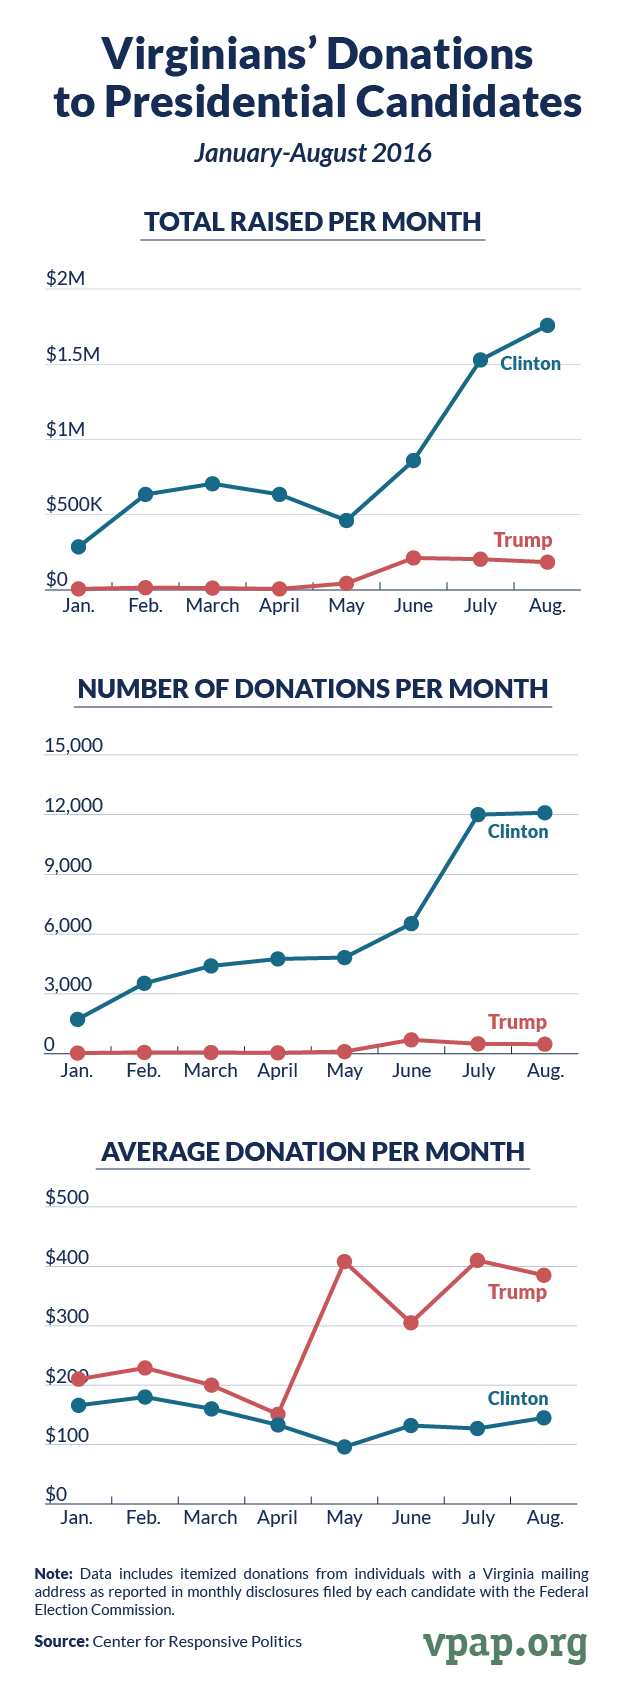 Virginians' Donations to Presidential Candidates, January-August